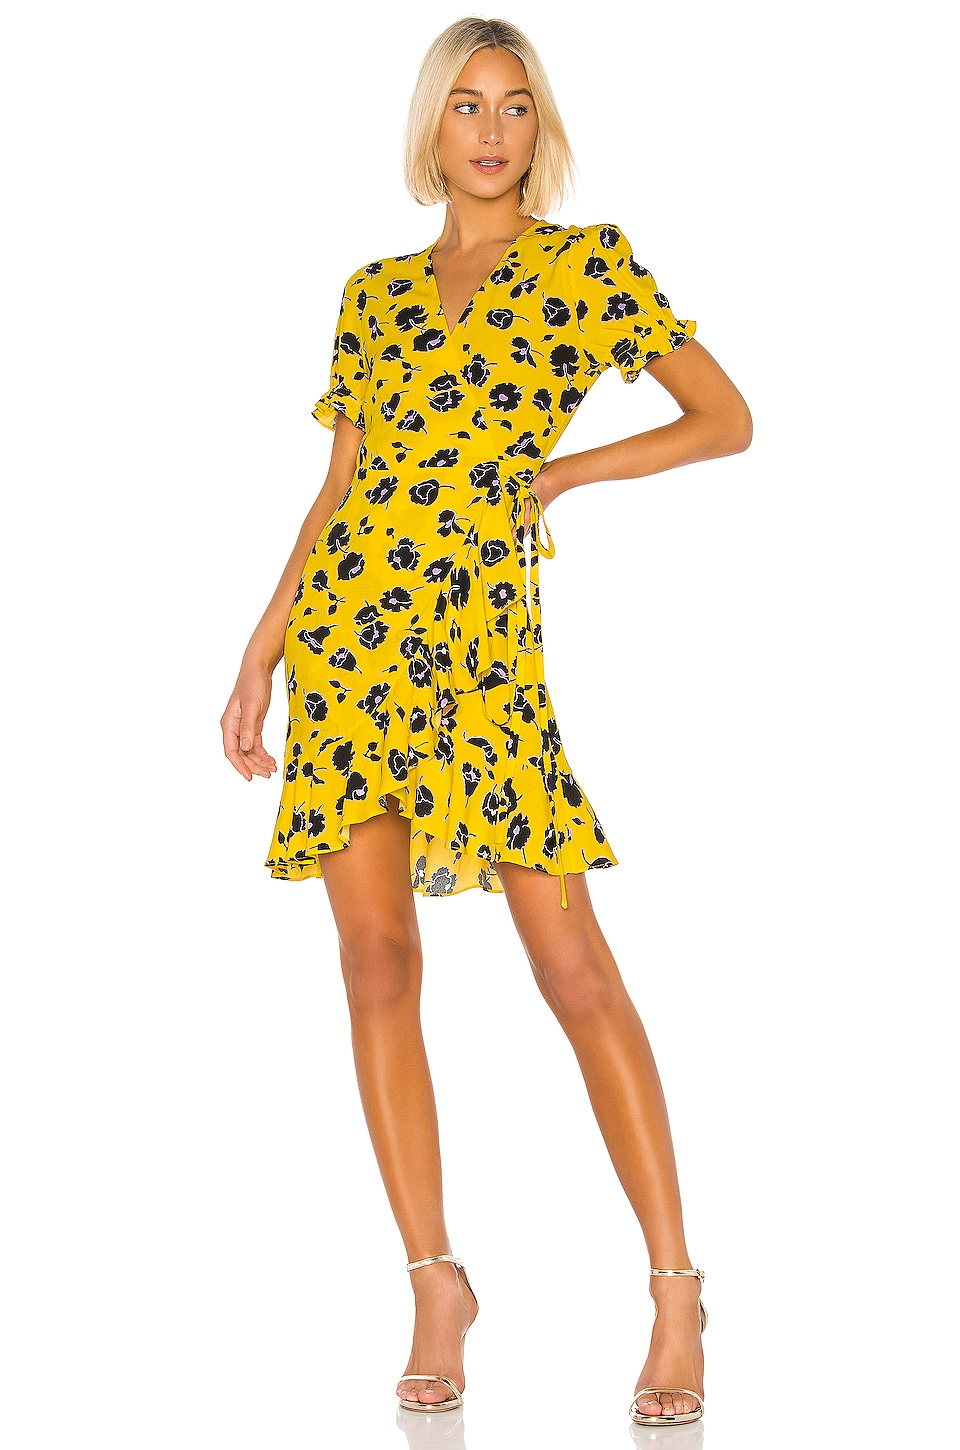 Diane von Furstenberg Kelly Dress in Rose Showers & Goldenrod